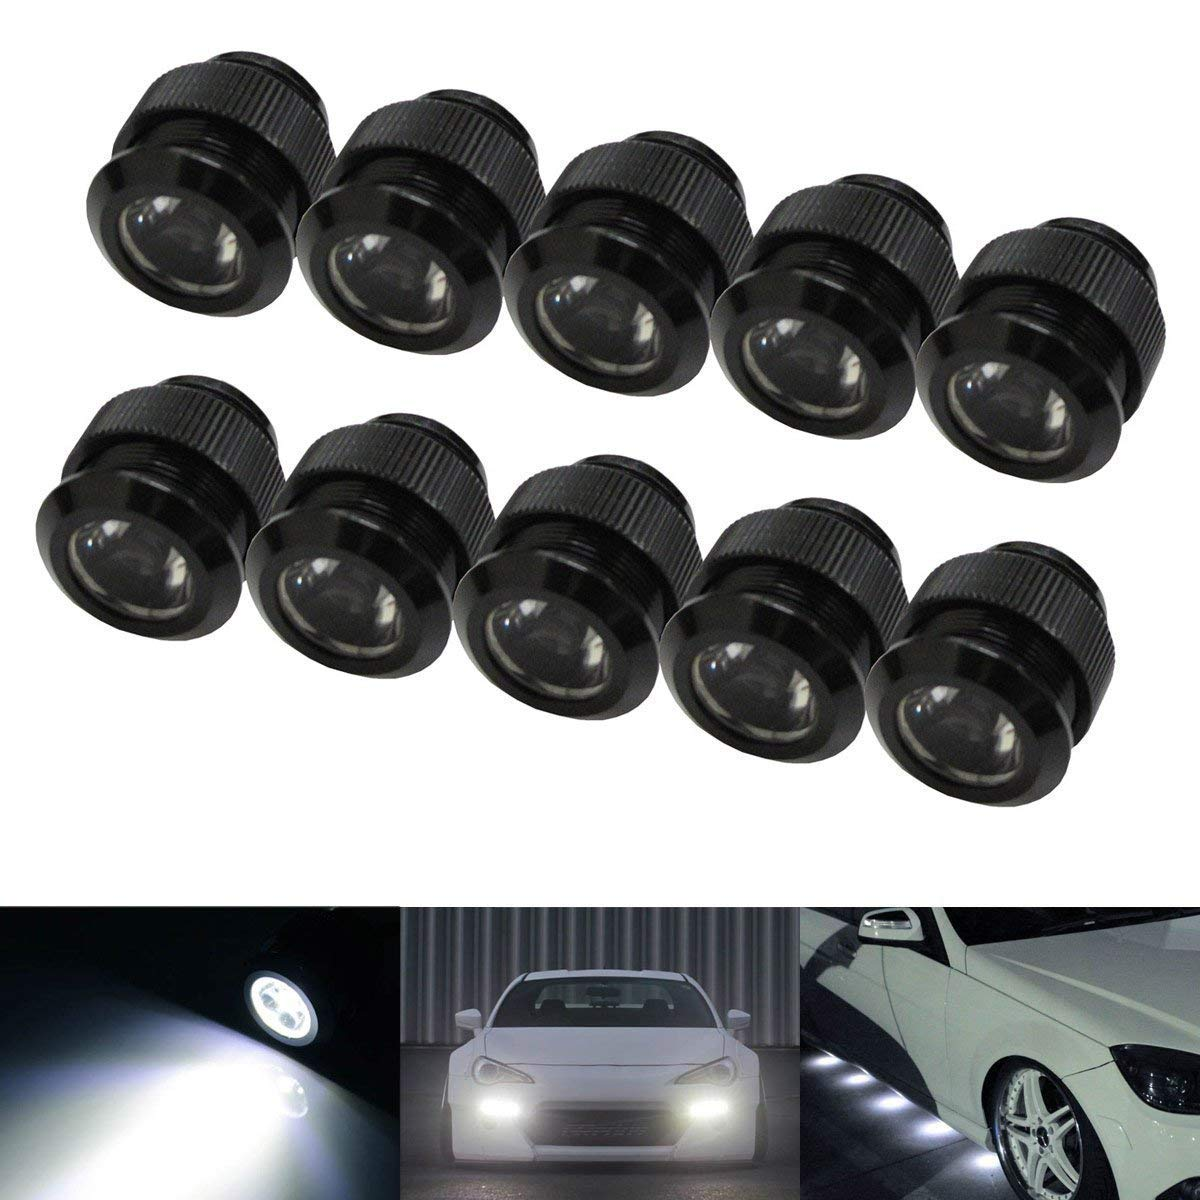 iJDMTOY 10pc 30W High Power Flexible LED Lighting Kit For Daytime Running Light or Under Car Puddle Light, 6000K Xenon White iJDMTOY Auto Accessories Universal Fit LED Daylight DRL Lighting